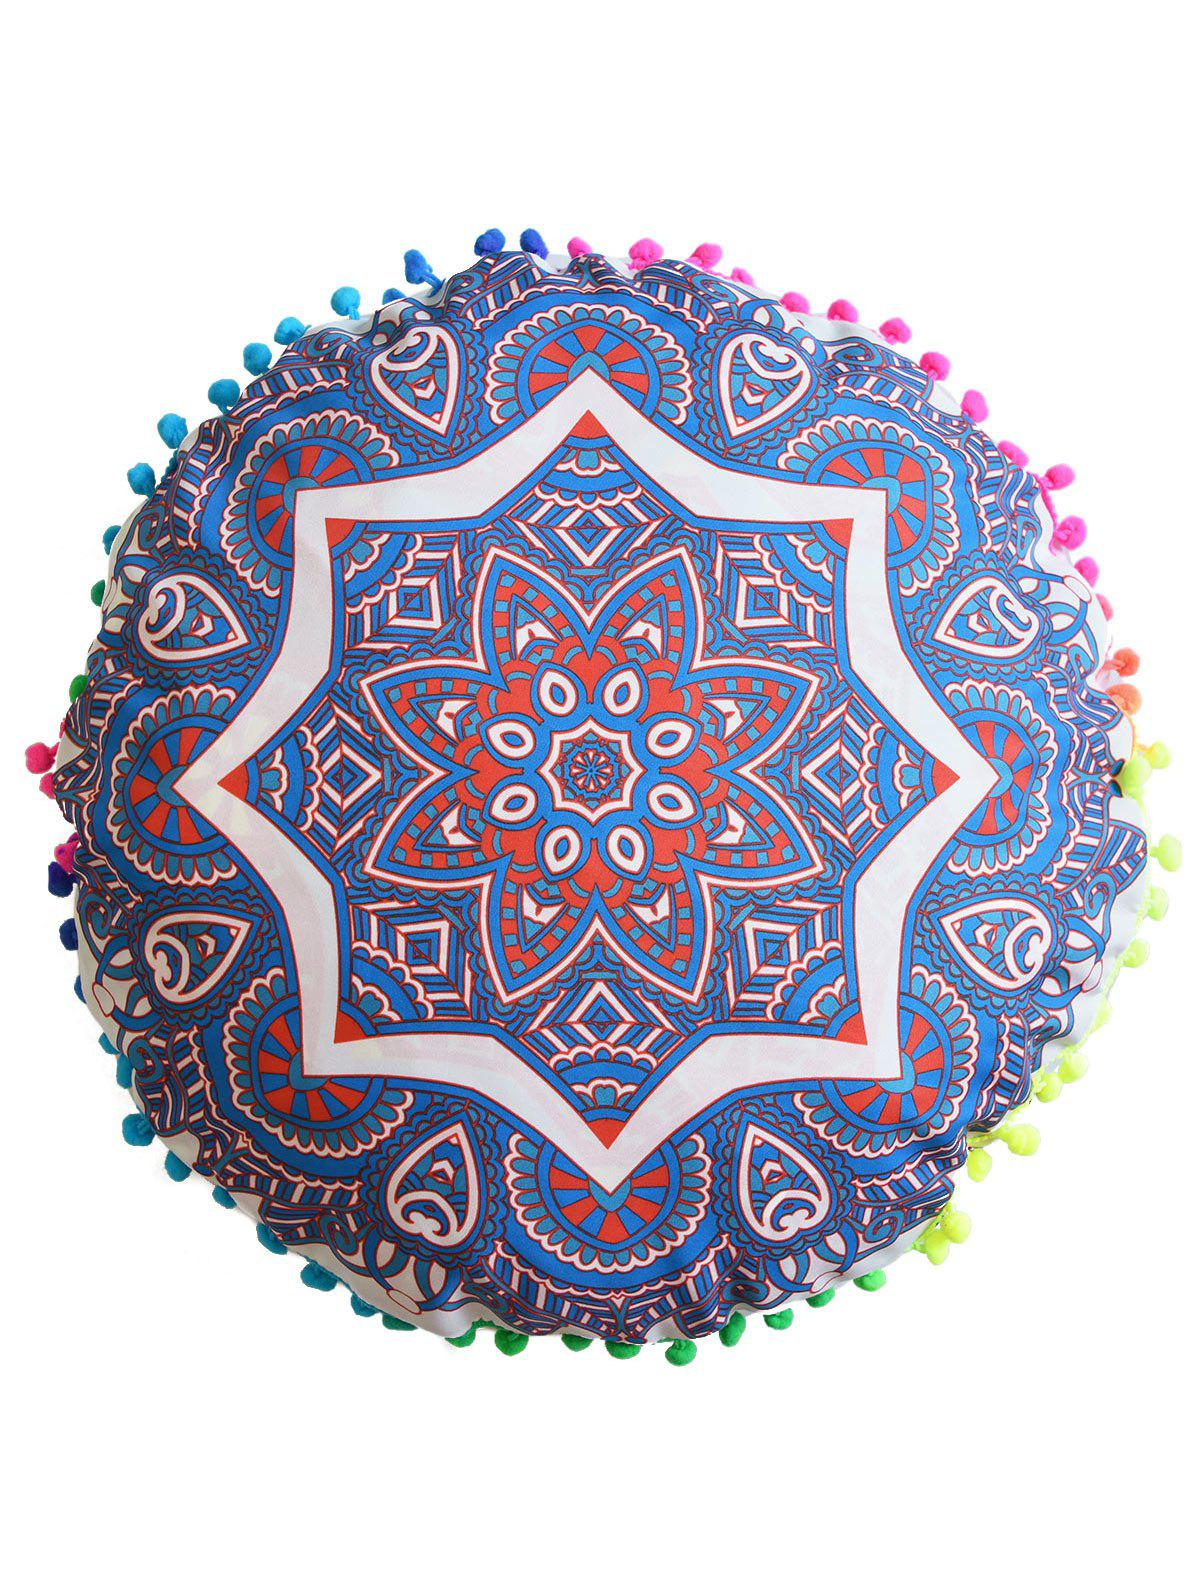 Mandala Round Cushion Floor Pillow Pouf CoverHOME<br><br>Size: DIAMETER: 45CM; Color: BLUE; Material: Polyester / Cotton; Pattern: Floral; Style: Accent/Decorative; Shape: Round; Weight: 0.0500kg; Package Contents: 1 x Pillow Case;